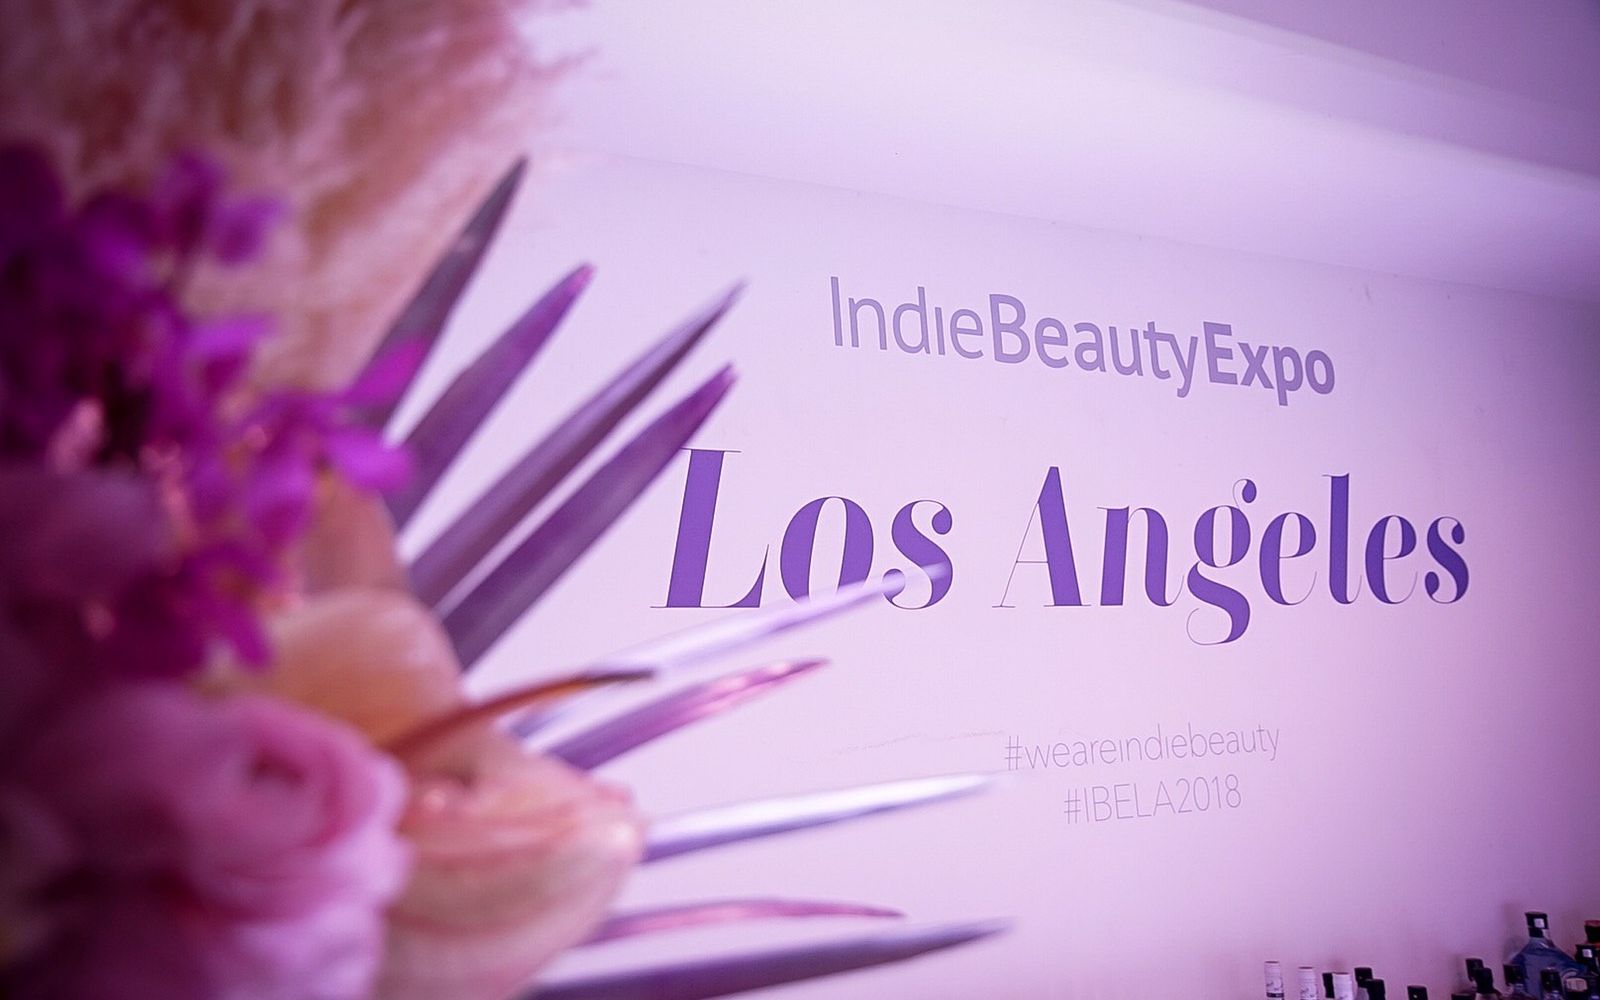 10 Standout Trends From Indie Beauty Expo's 2018 Los Angeles Edition